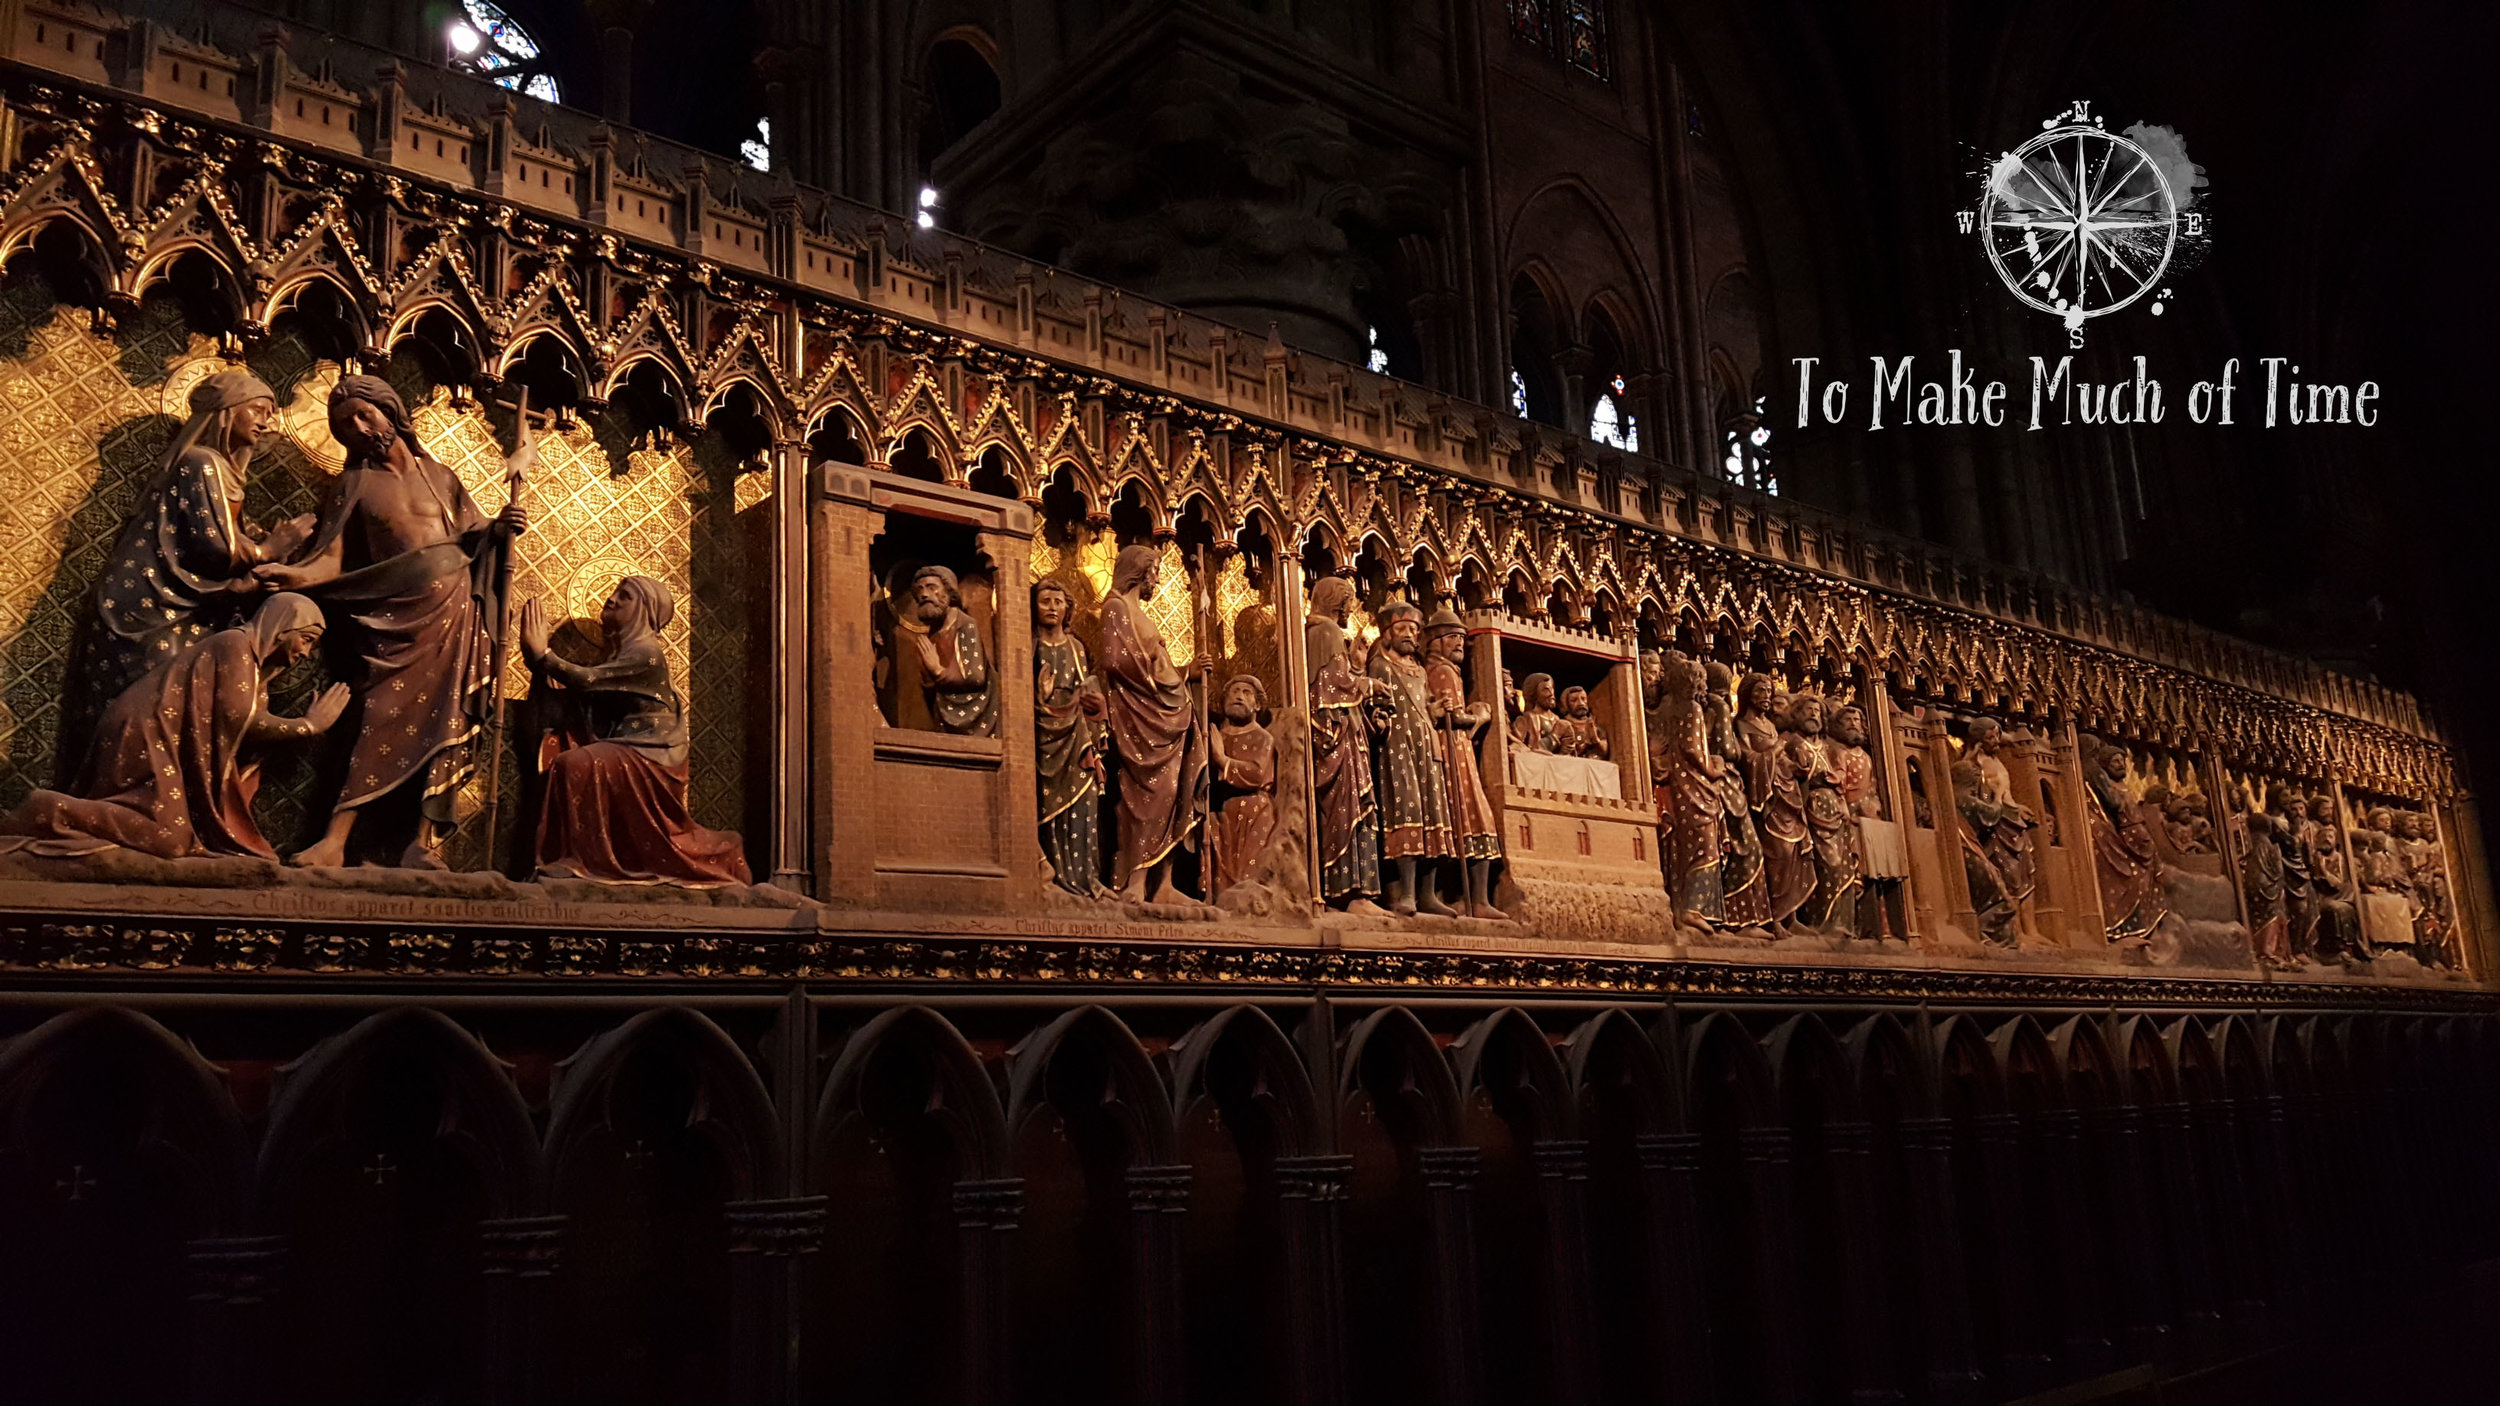 Notre Dame Cathedral | Stories of Christ Wooden Relief | Paris France | To Make Much of Time